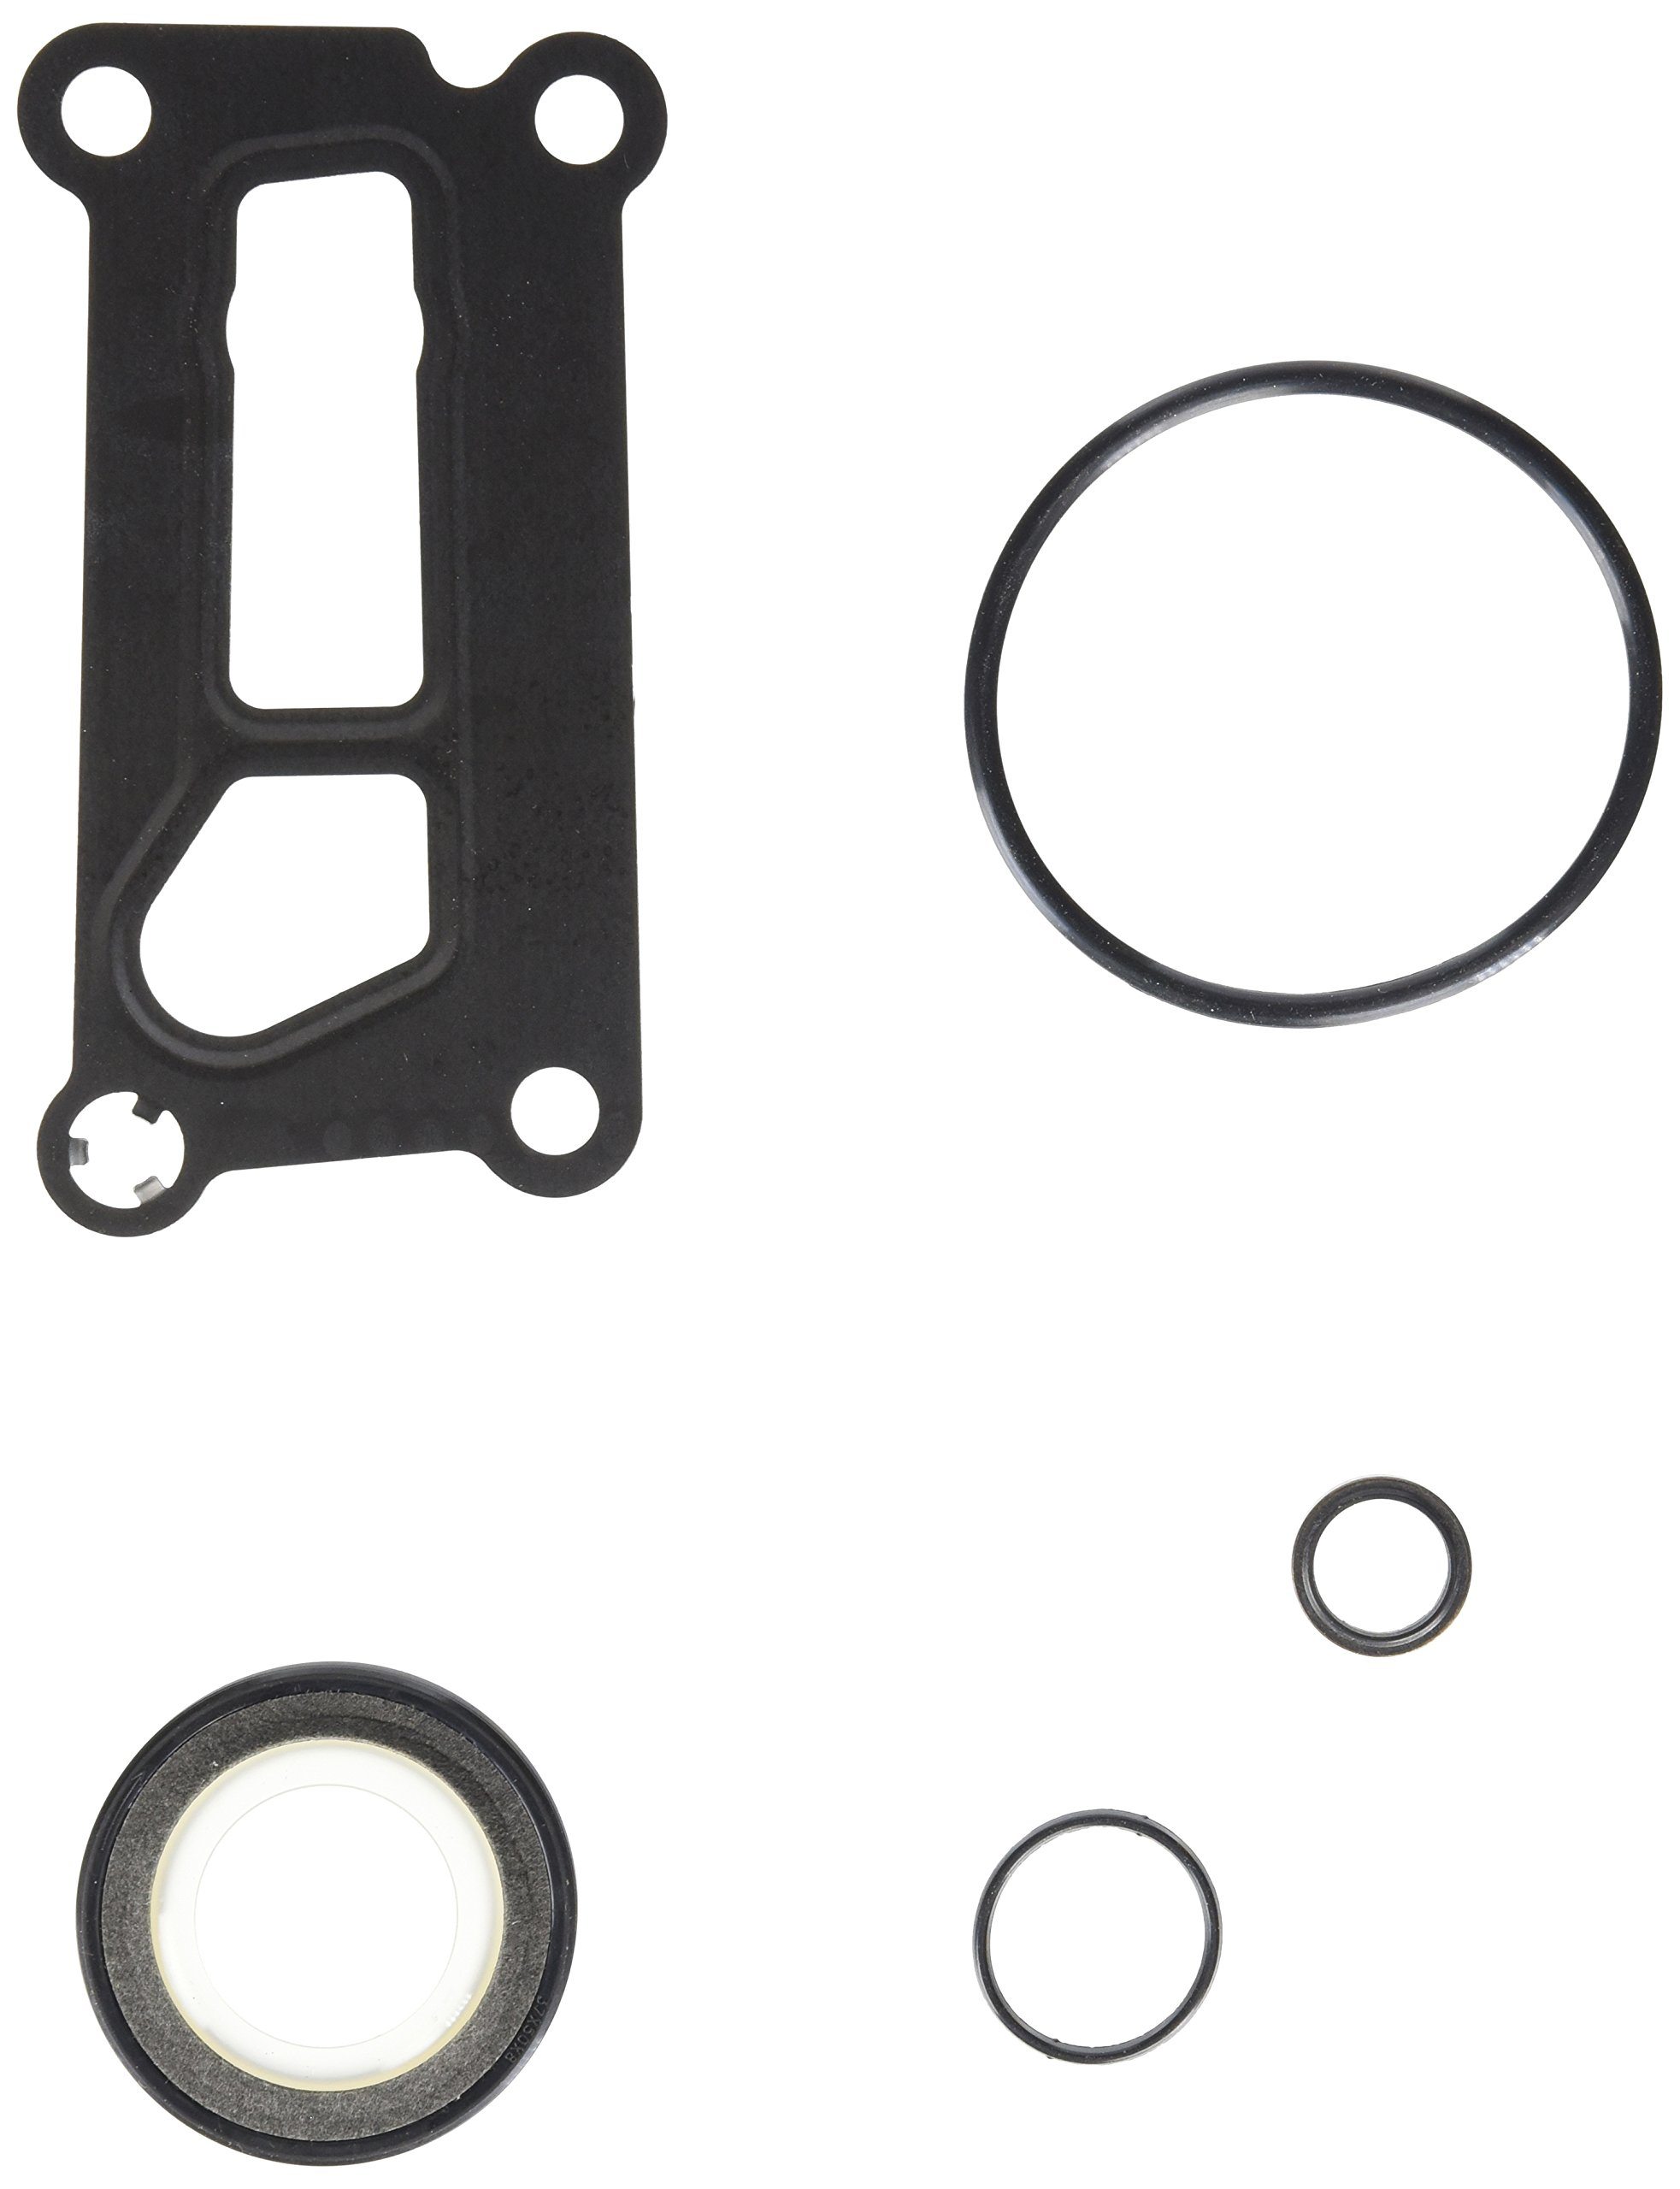 MAHLE Original JV5071 Engine Timing Cover Gasket Set